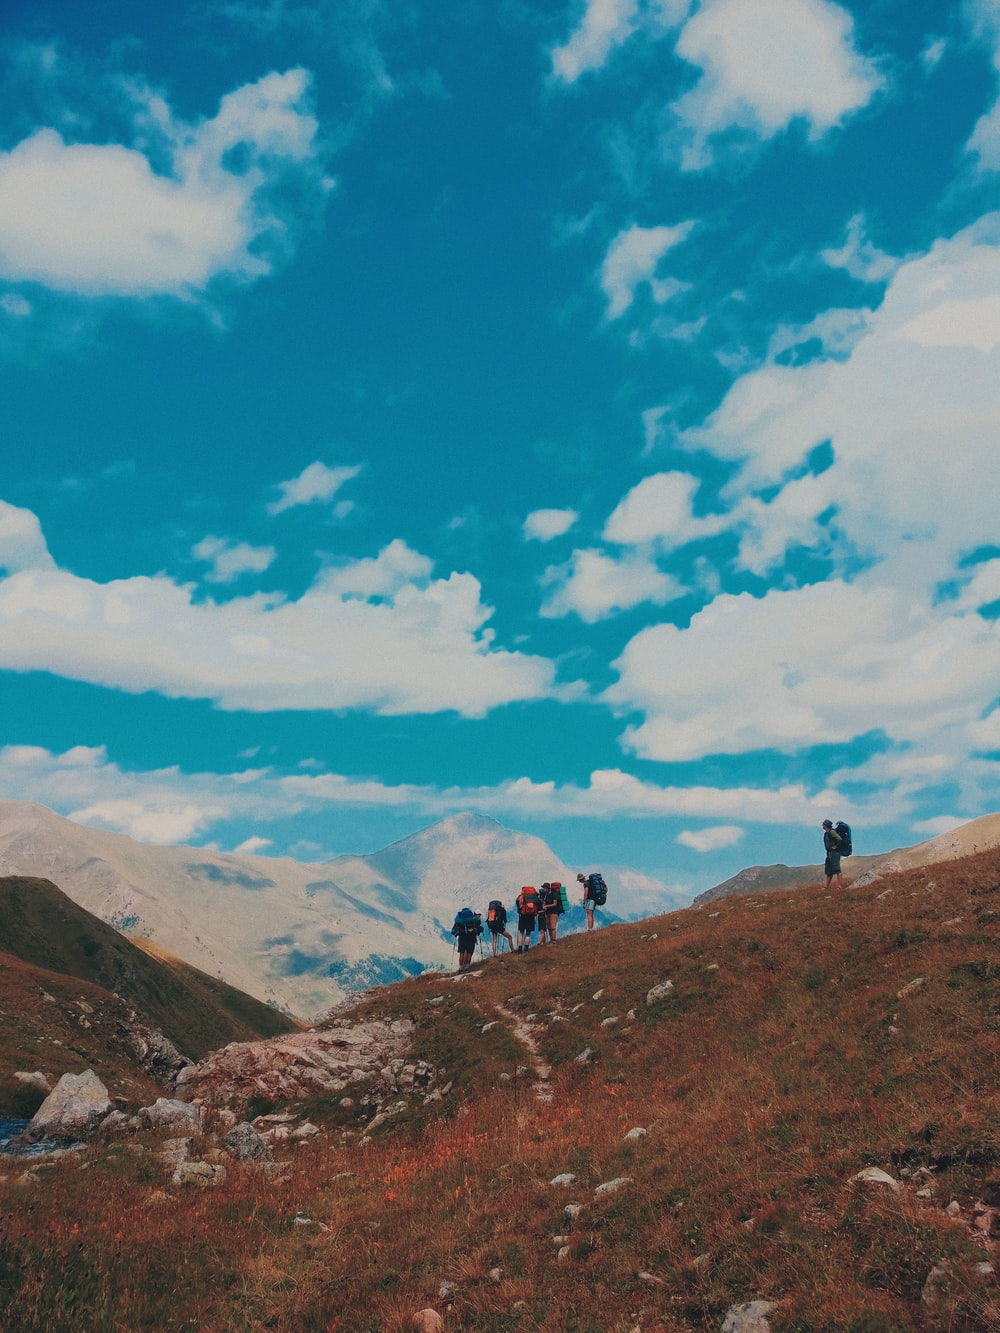 group of people standing on mountain range